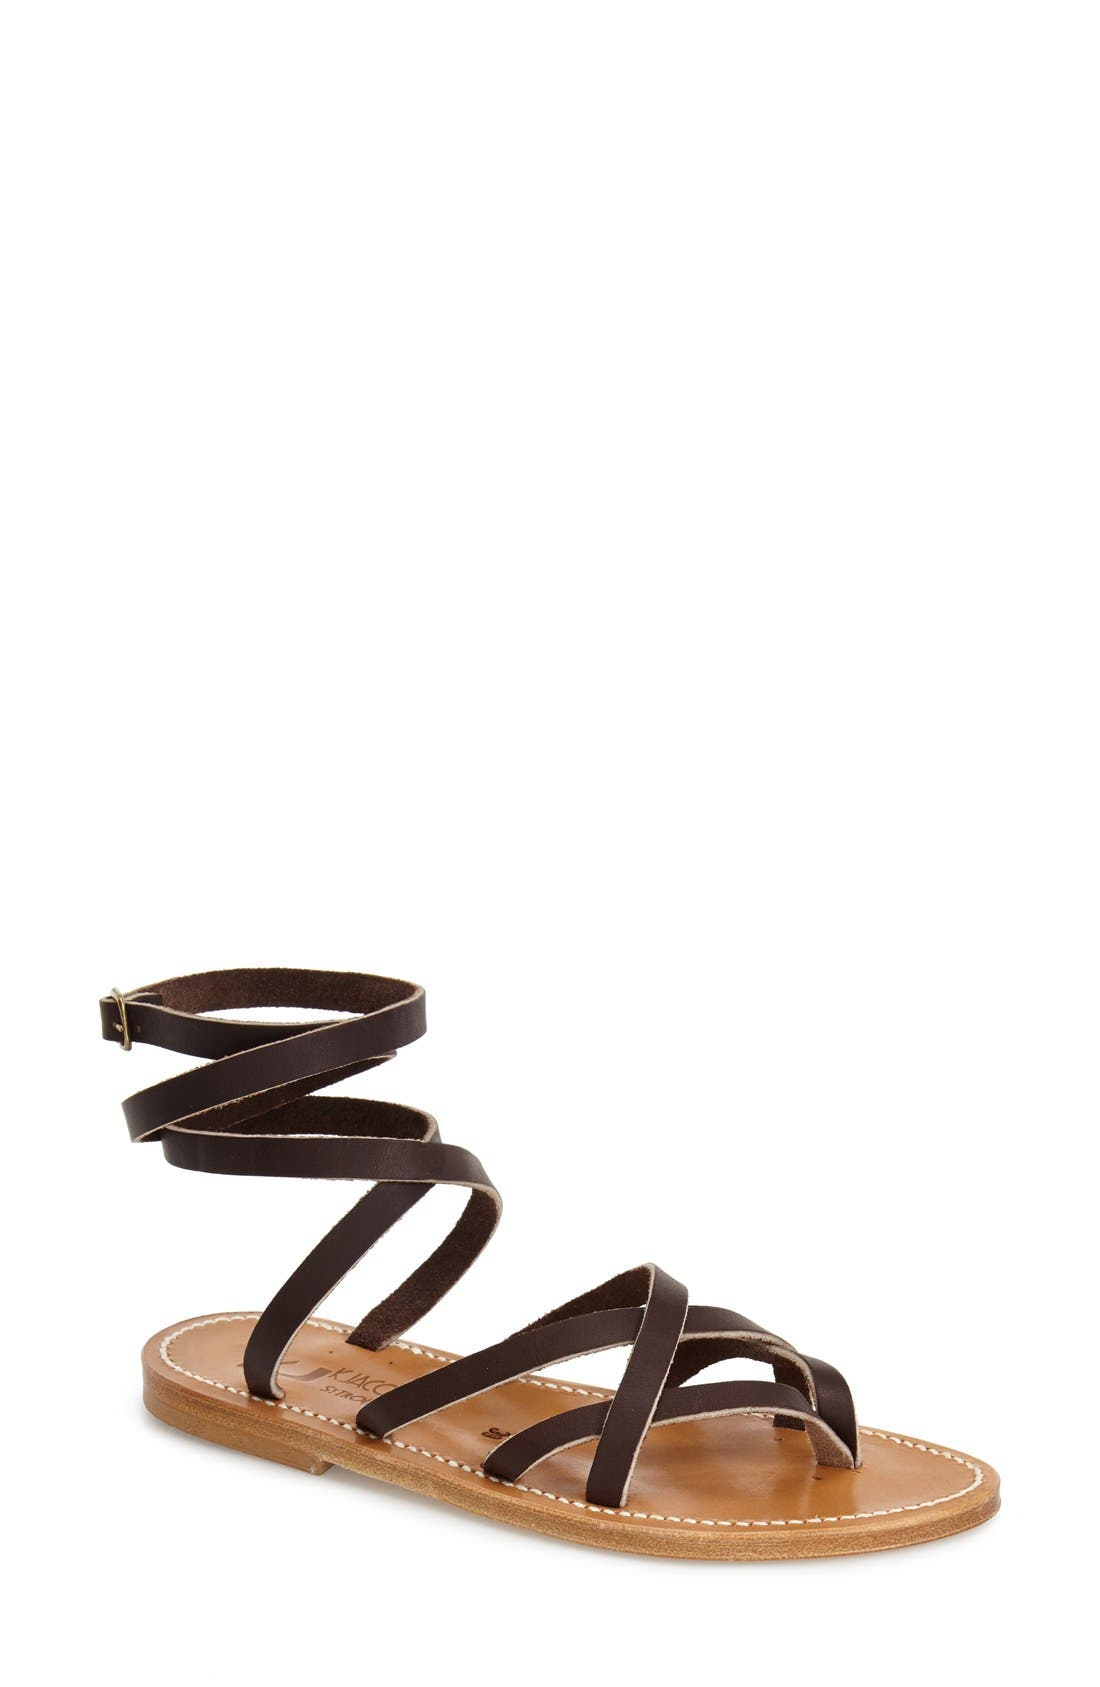 Alternate Image 1 Selected - K.Jacques St. Tropez 'Zenobie' Ankle Wrap Sandal (Women)